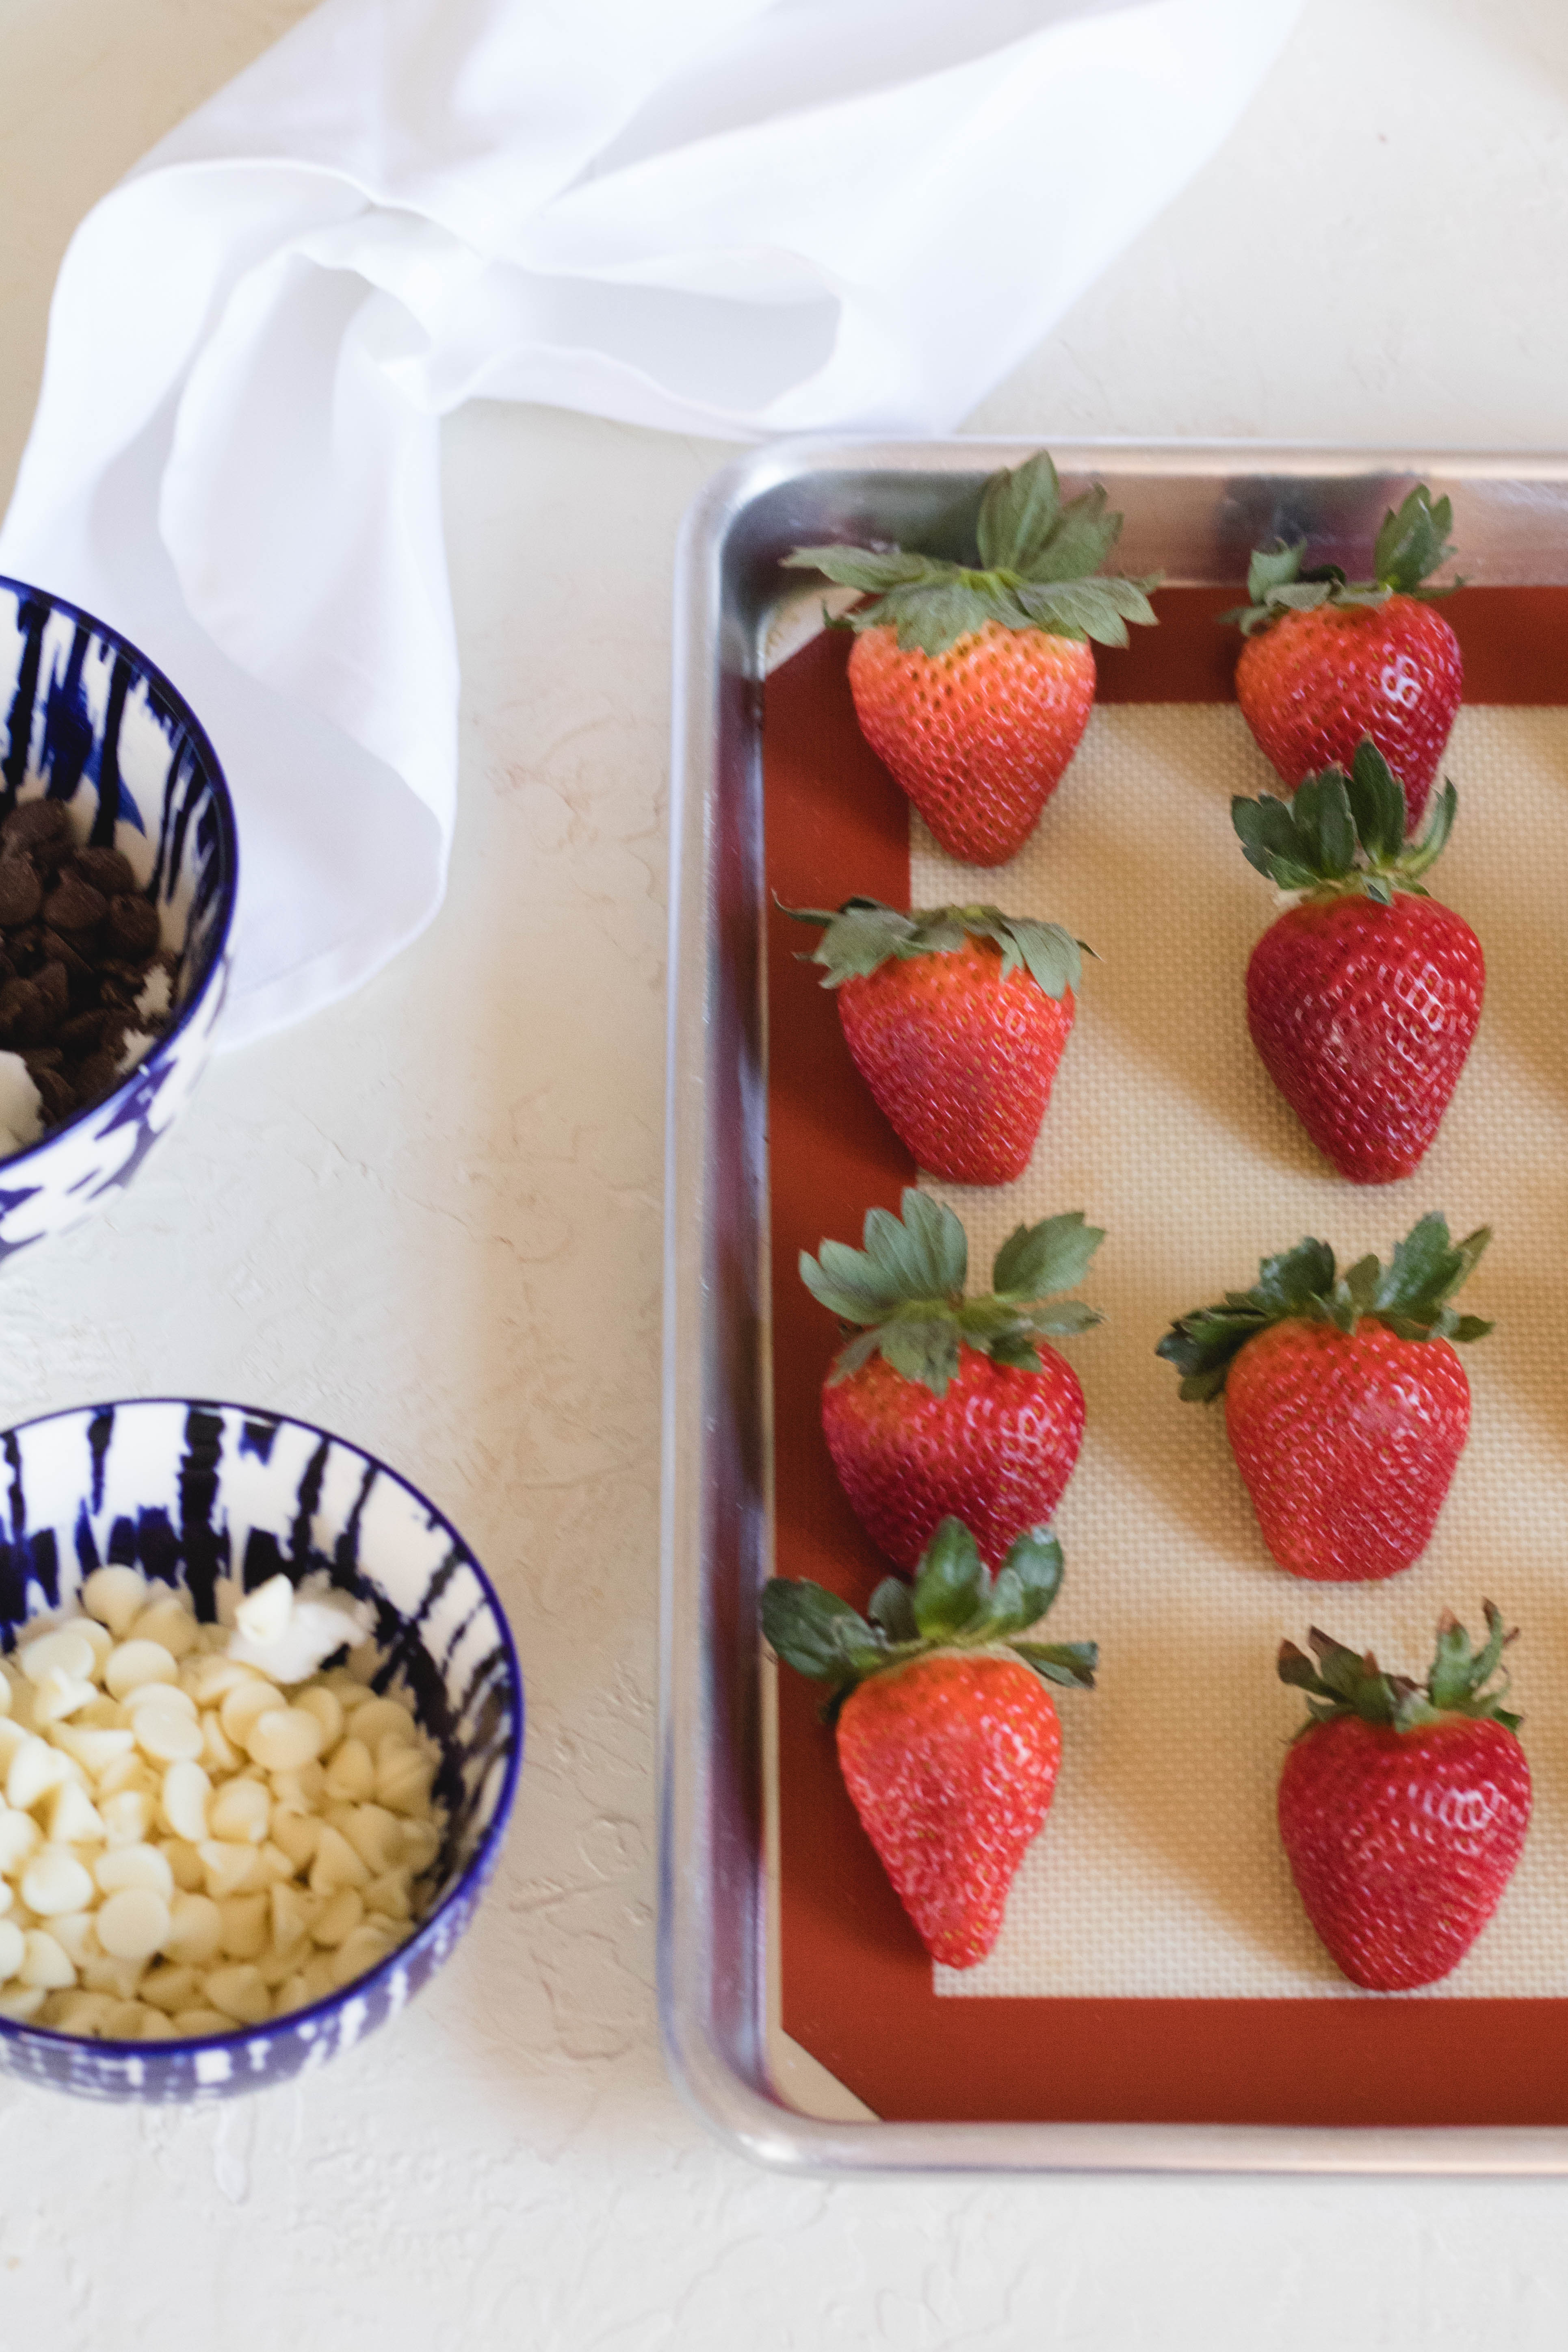 making chocolate covered strawberries